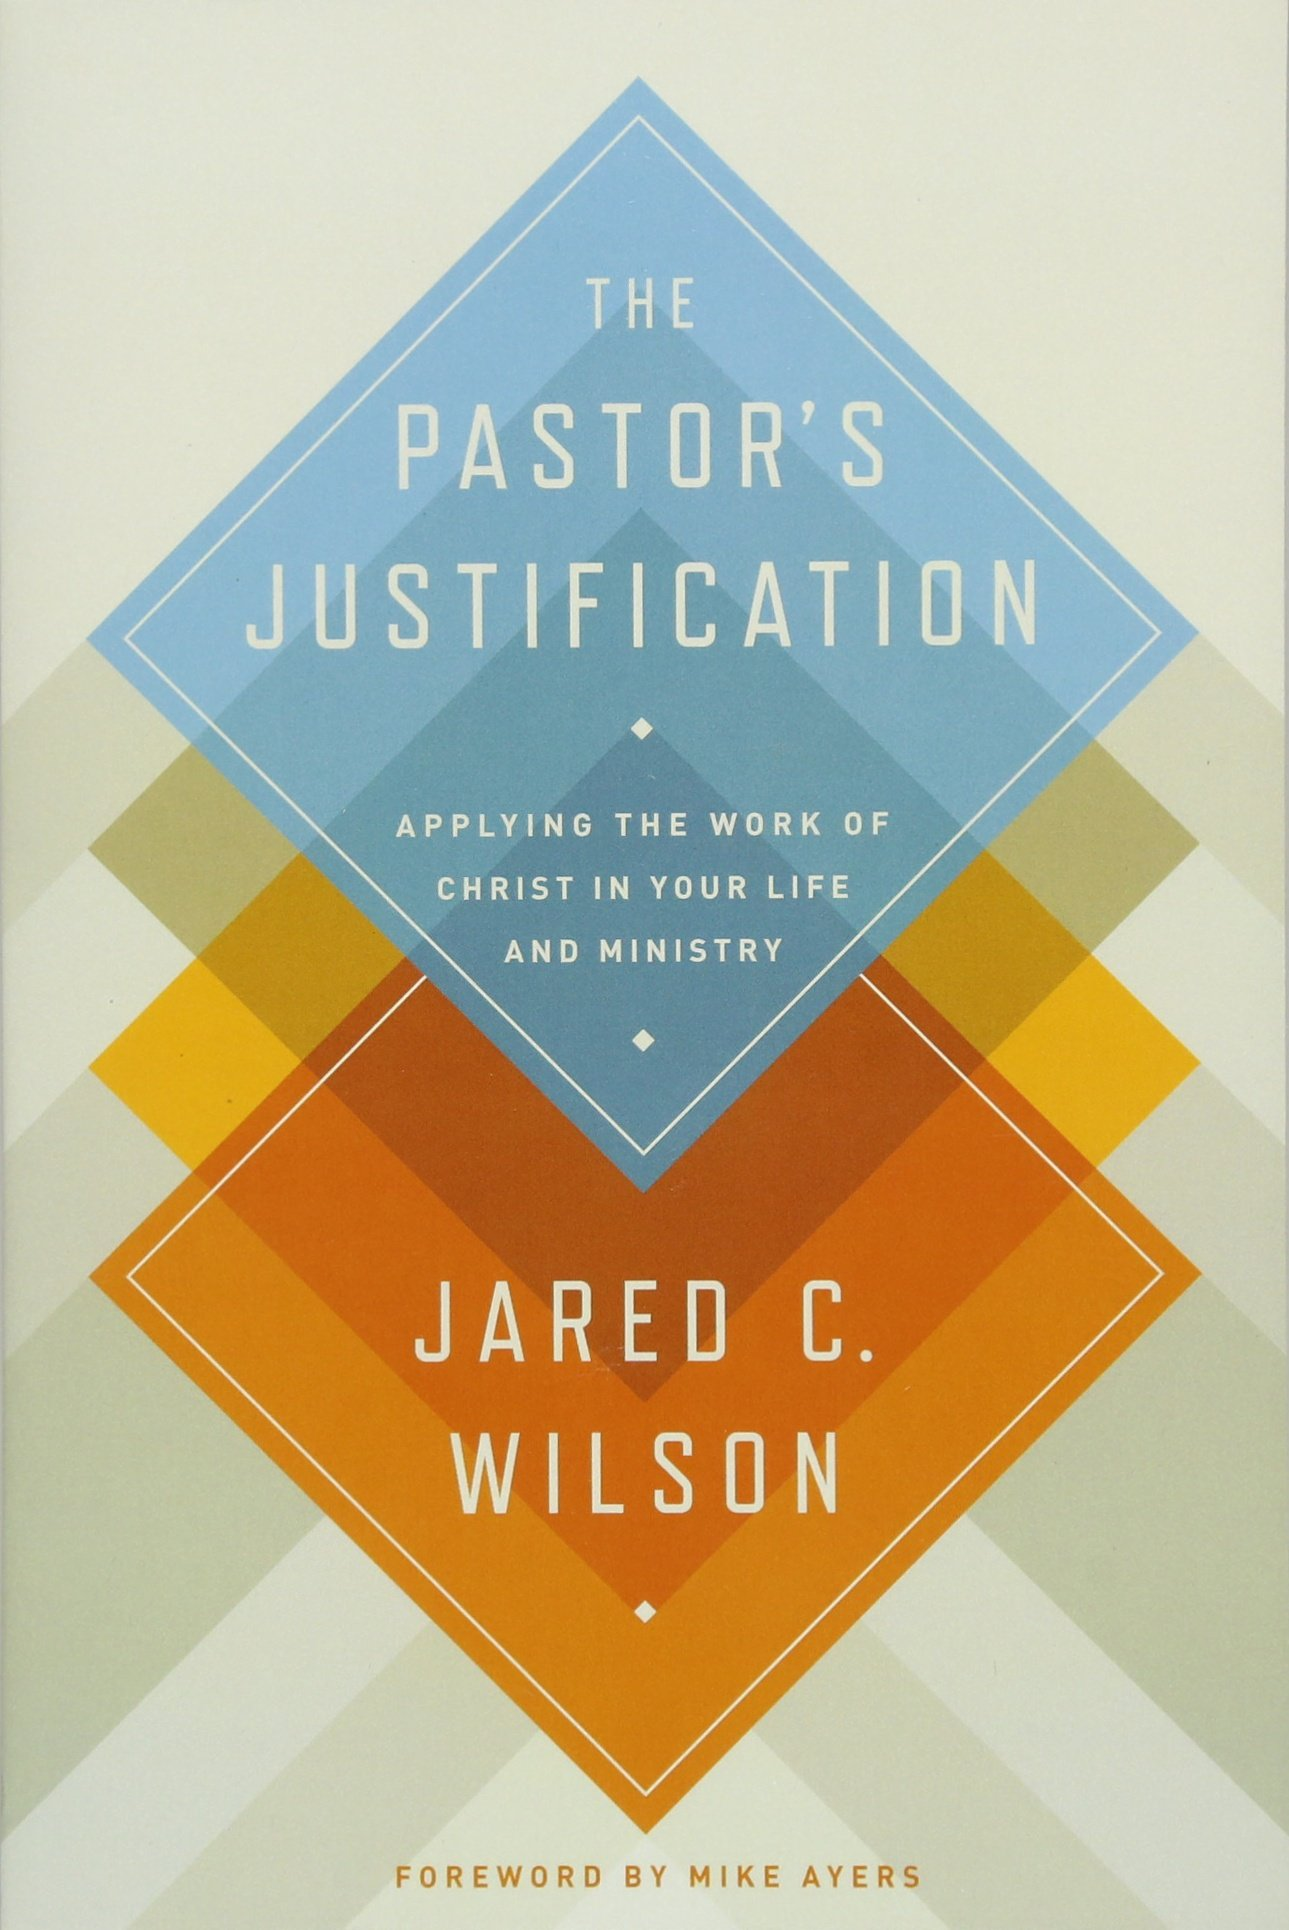 The Pastor's Justification: Applying the Work of Christ in Your Life and  Ministry: Wilson, Jared C., Ayers, Mike: 9781433536649: Amazon.com: Books